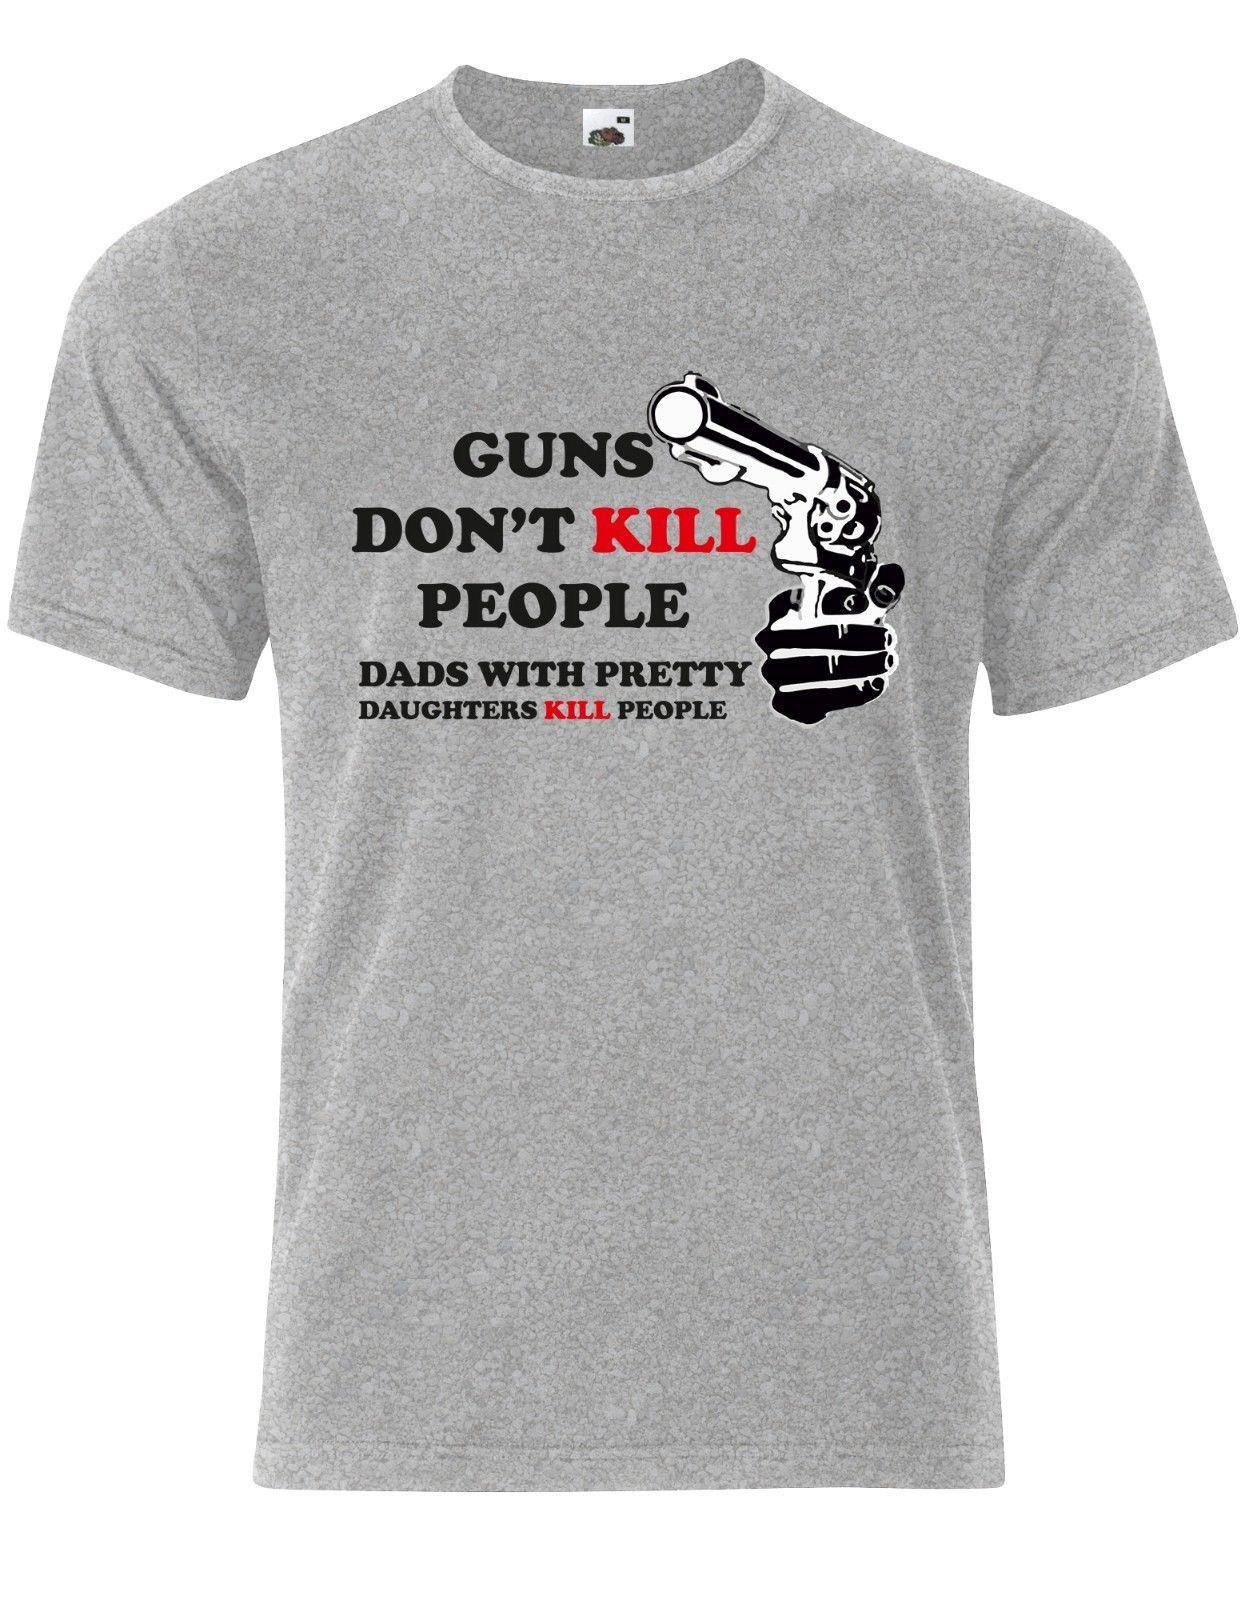 f19ec789 Guns don't kill people Dads do Girls Fathers Quote Mens Tshirt Tee Top AJ87  Cool Casual pride t shirt men Unisex New Fashion tshirt